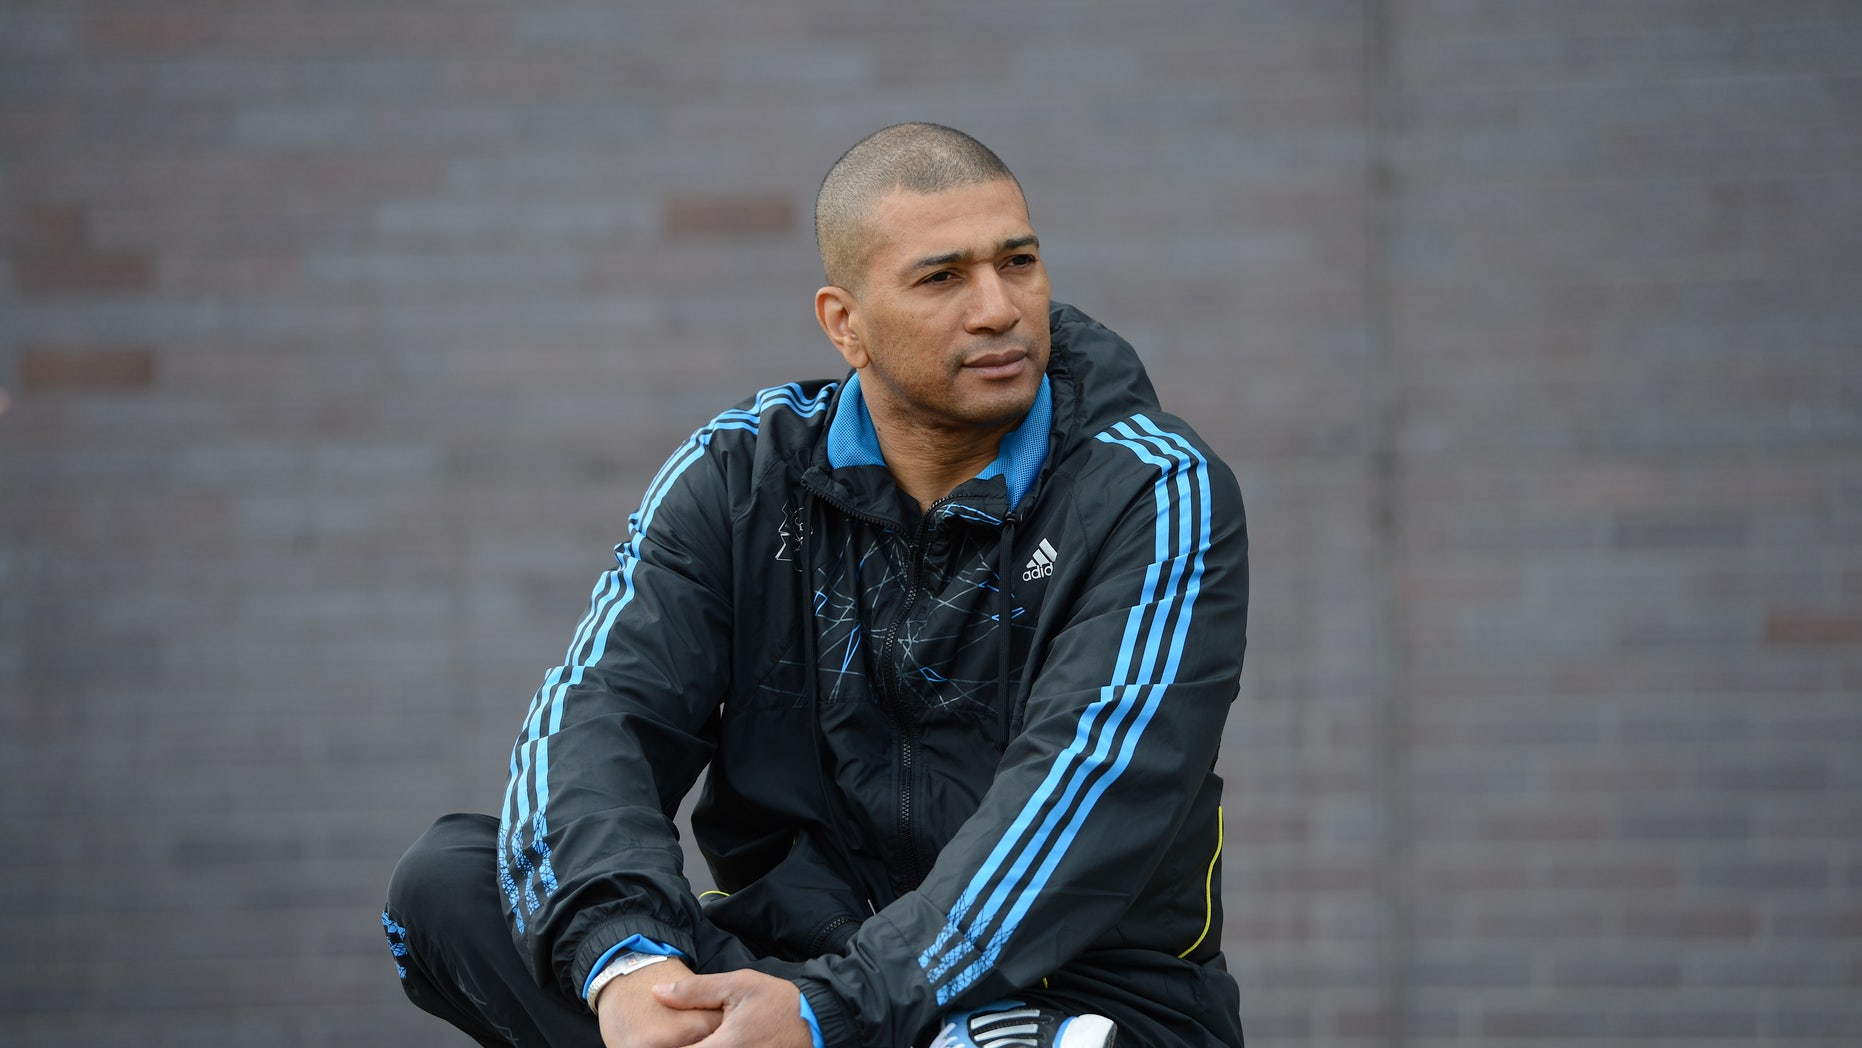 May 5, 2012: Taekwondo coach Patrice Remarck posing for a photograph during the European Taekwondo Championships, at the Manchester Regional Arena, Manchester, England.